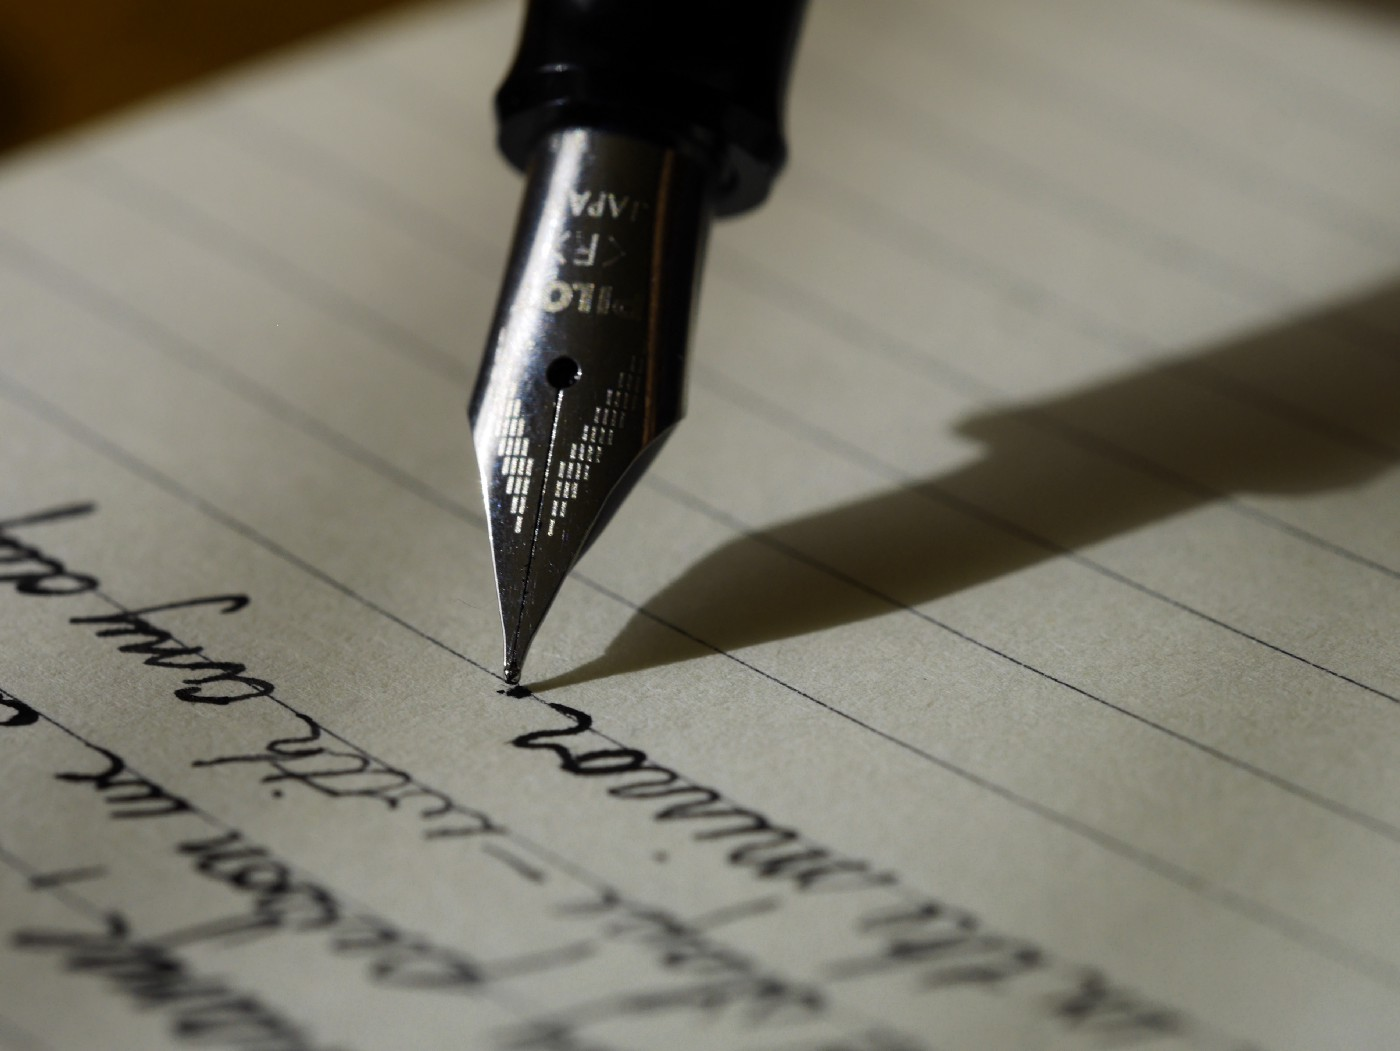 Photo of fountain pen writing on paper